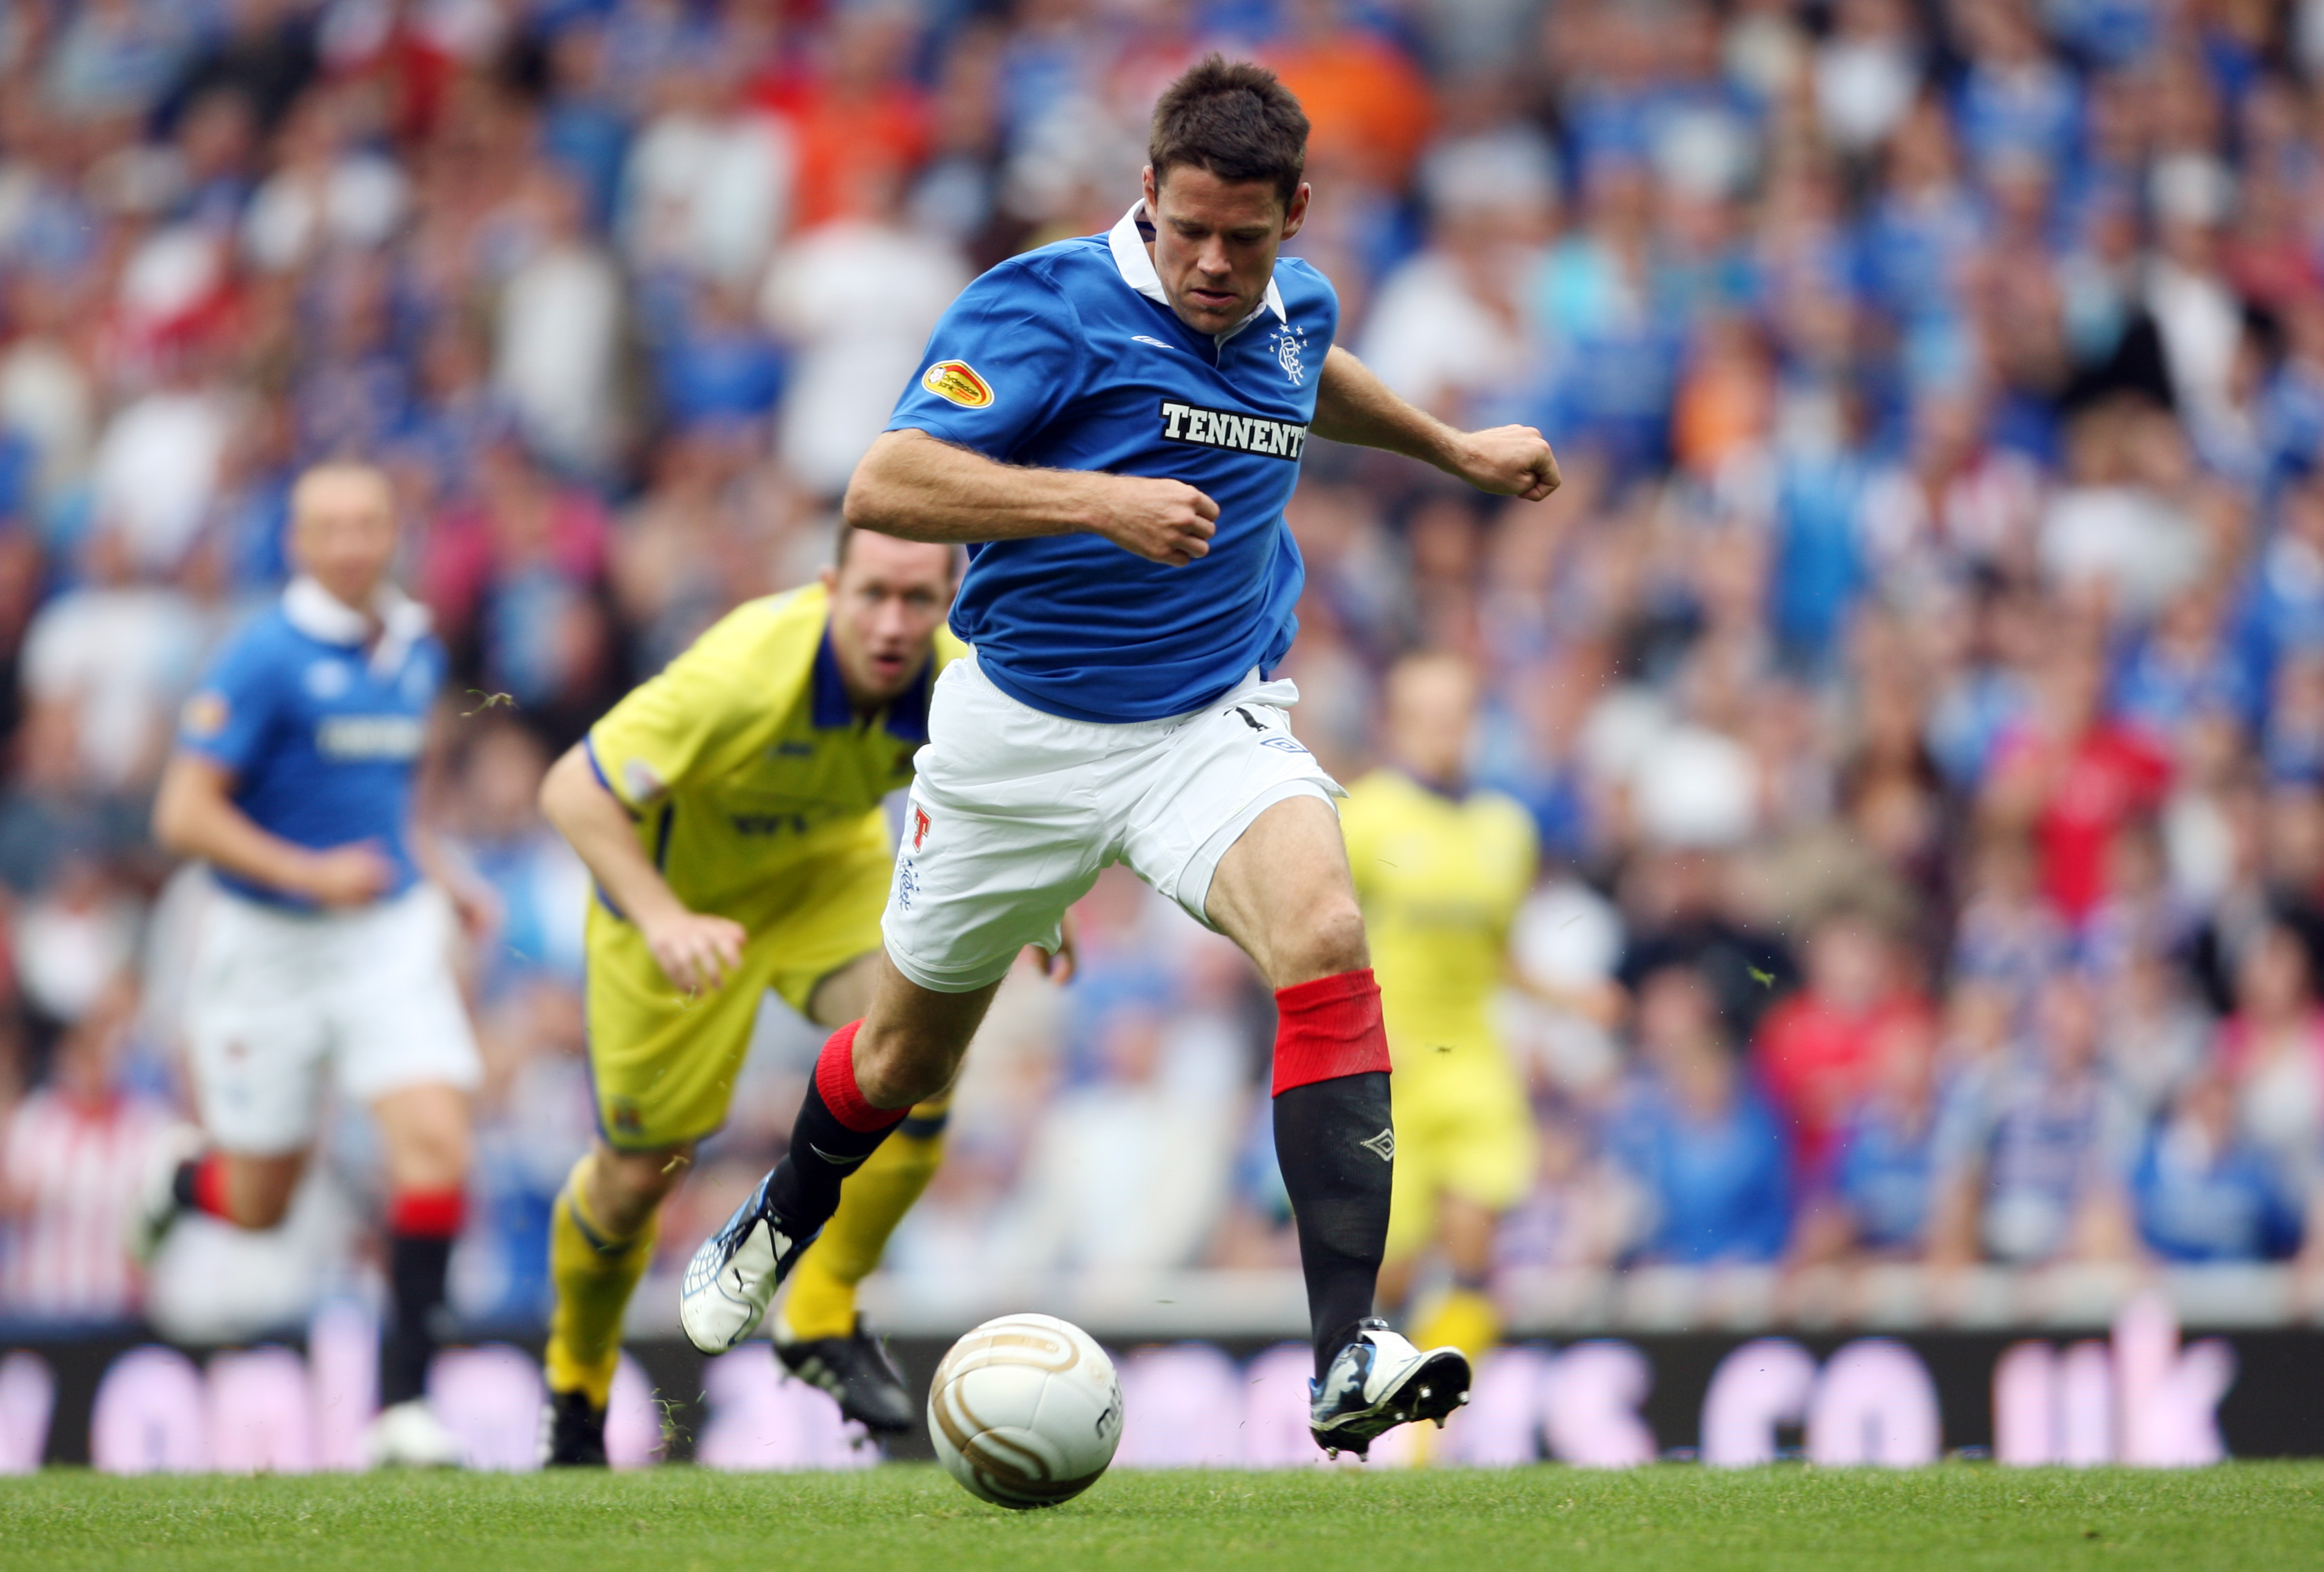 GLASGOW, UNITED KINGDOM - AUGUST 14:  James Beattie of Glasgow Rangers running through on goal during the Clydesdale Bank Scottish Premier League match between Glasgow Rangers and Kilmarnock at Ibrox Stadium on August 14, 2010 in Glasgow, Scotland. (Photo